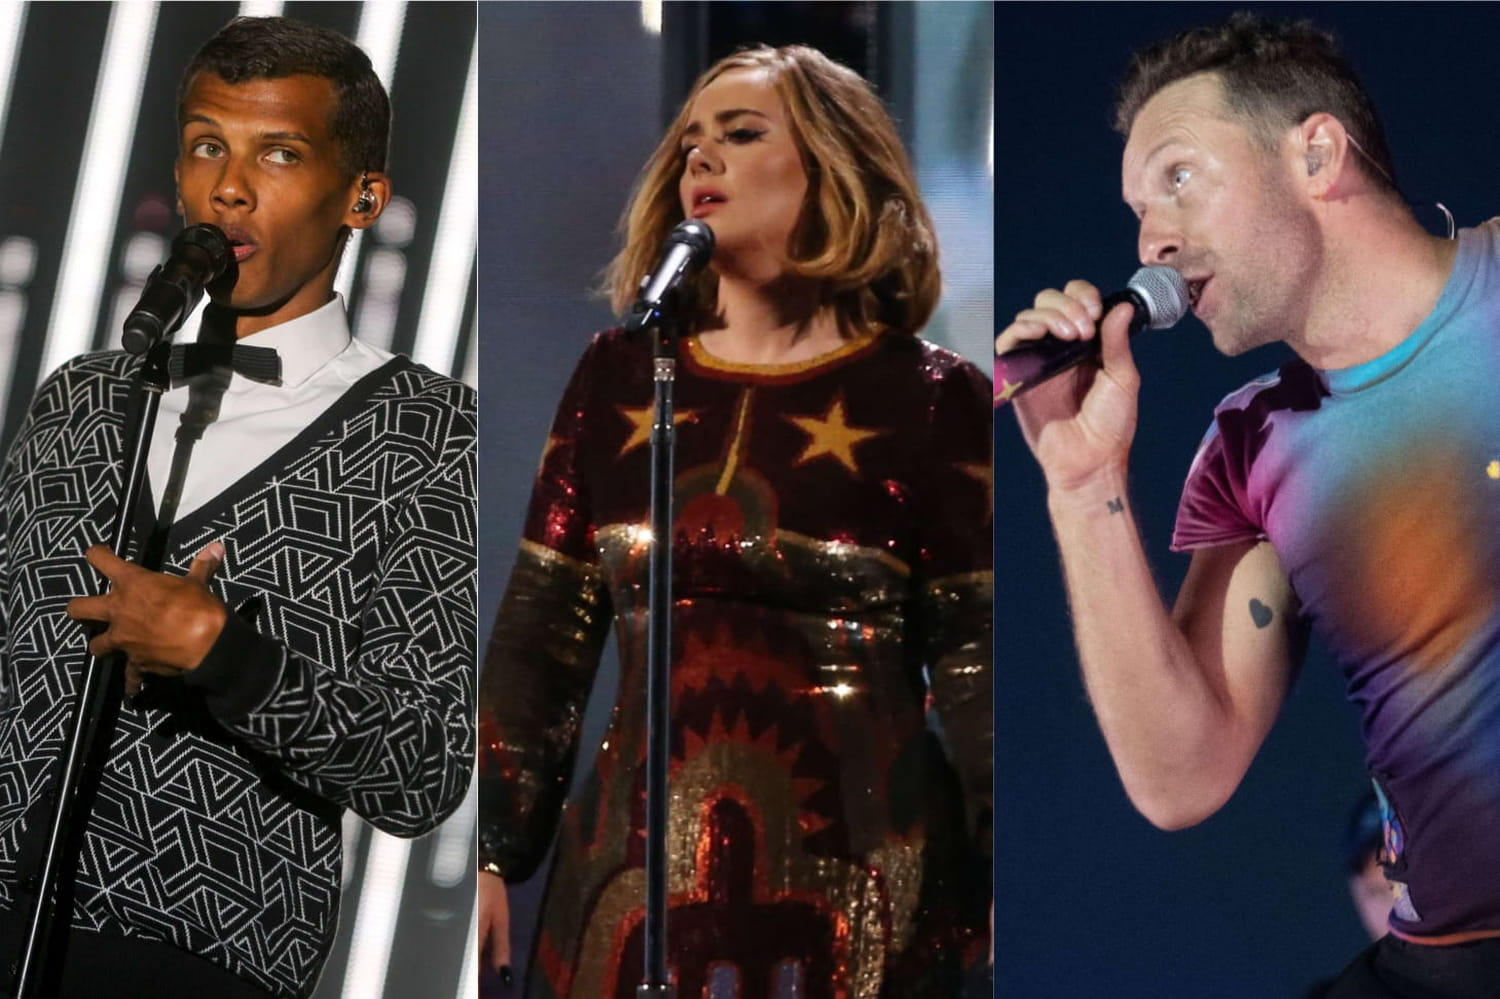 Sorties streaming: Stromae, Adele, Coldplay... Les nouveautés